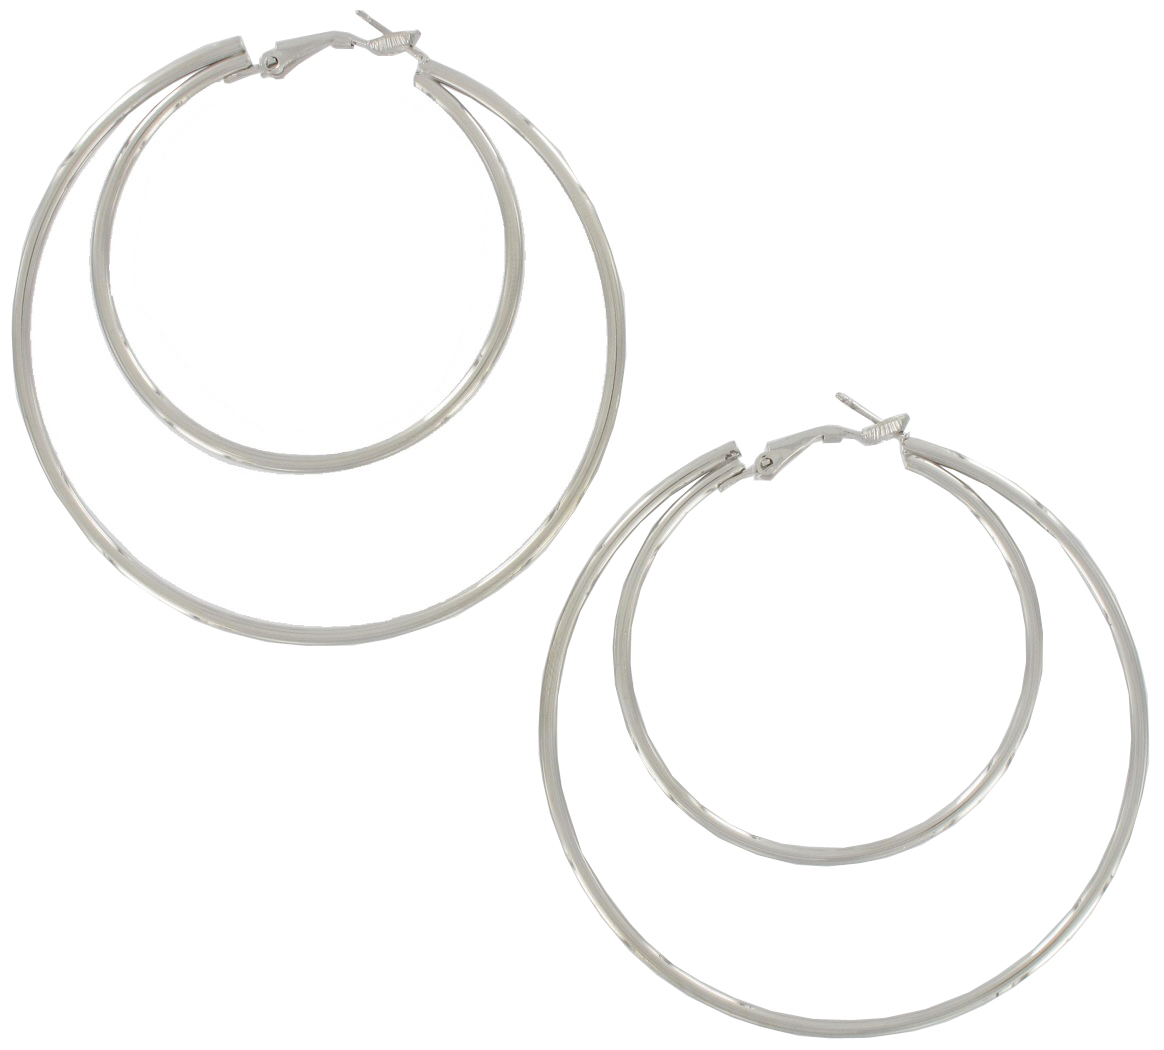 ky co usa pierced earrings hoop new double large silver. Black Bedroom Furniture Sets. Home Design Ideas